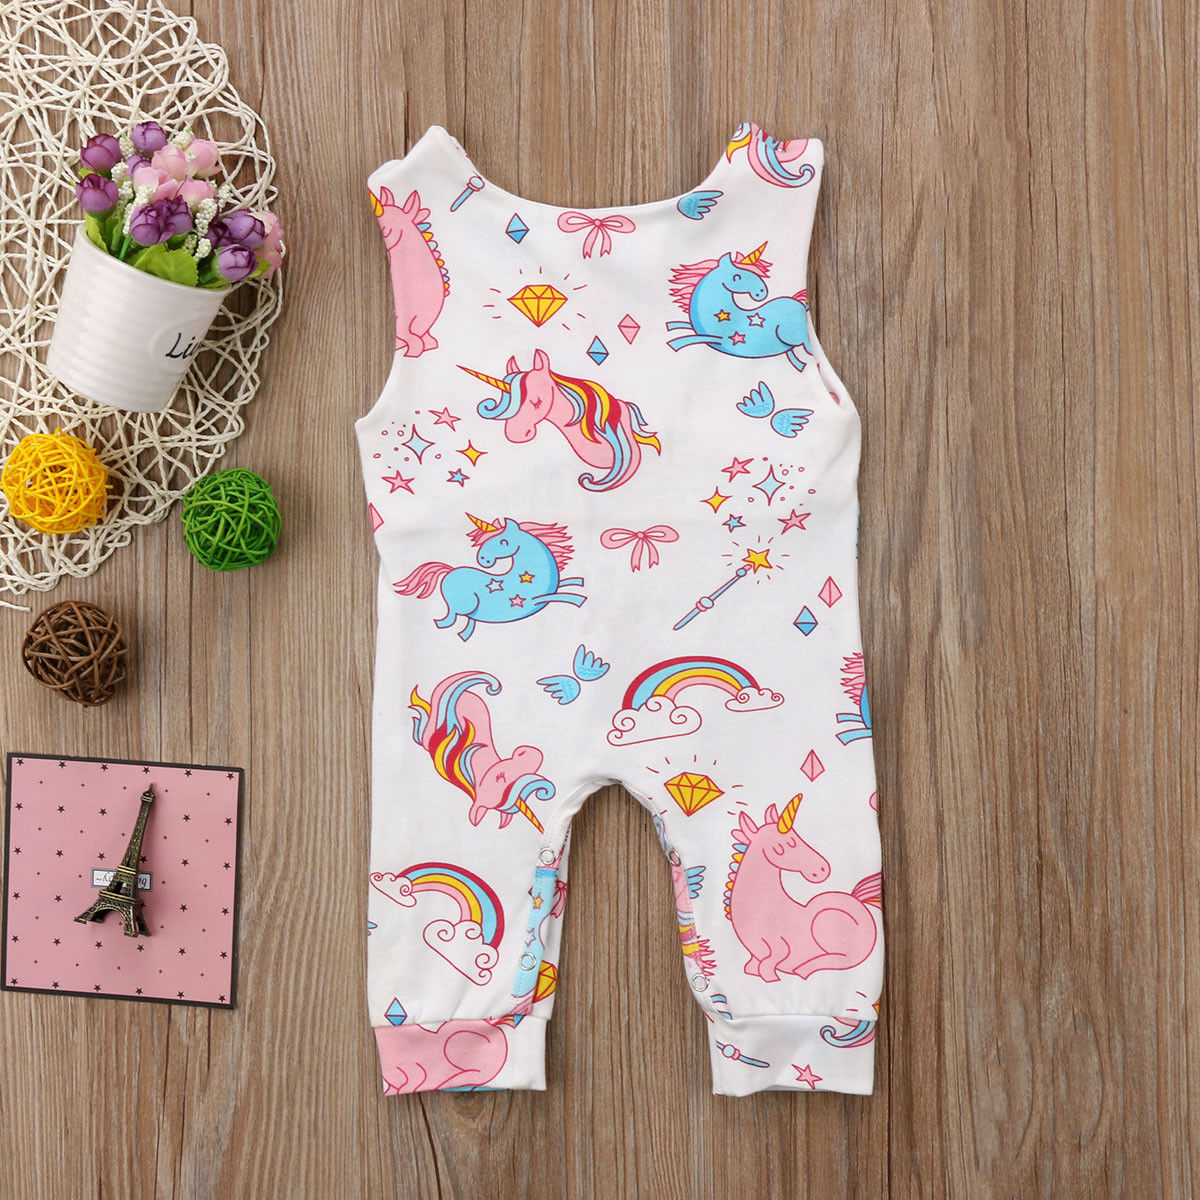 Pudcoco Newborn Baby Clothing Cute Unicorn Sleeveless   Romper   Jumpsuit Cotton baby girl boy clothes Cartoon Summer baby costume